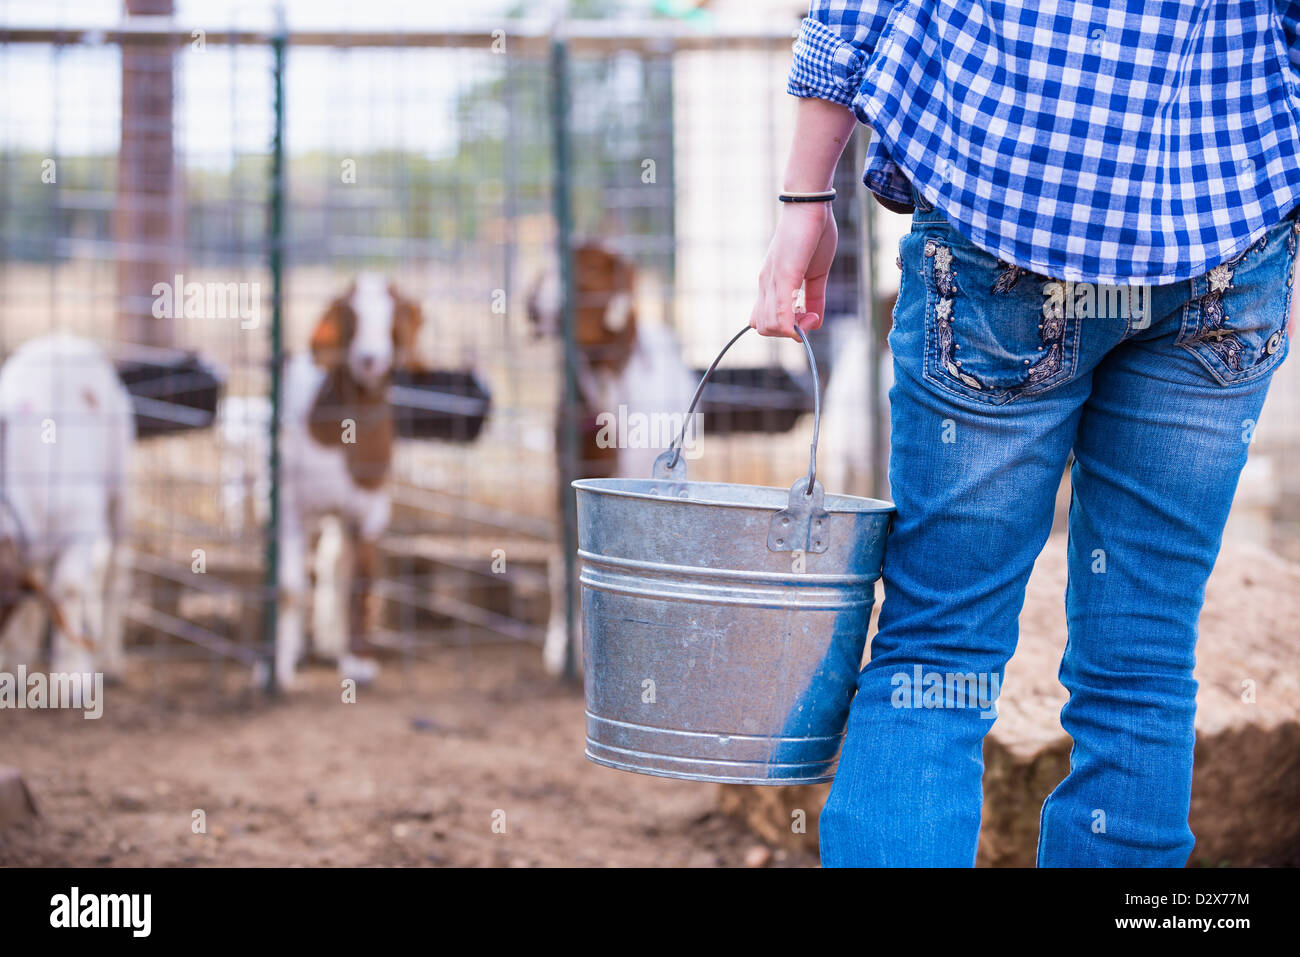 Female teenager feeding goats from a metal bucket on livestock farm - Stock Image